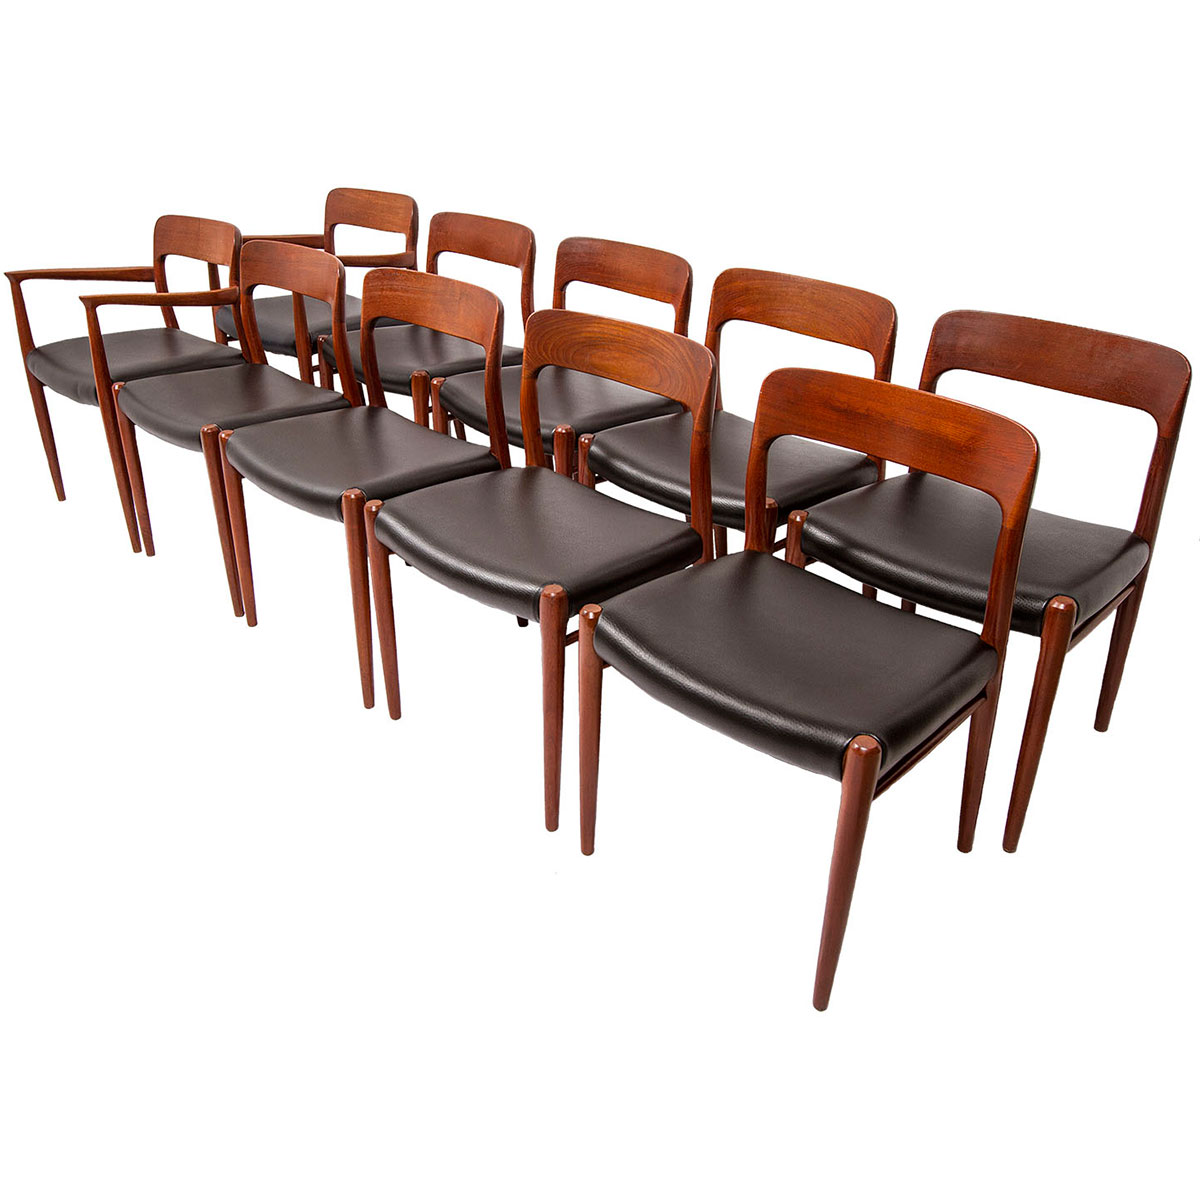 Set of 10 (2 Arm + 8 Side) Niels Møller #56 & #75 Teak Dining Chairs w/ New Upholstery